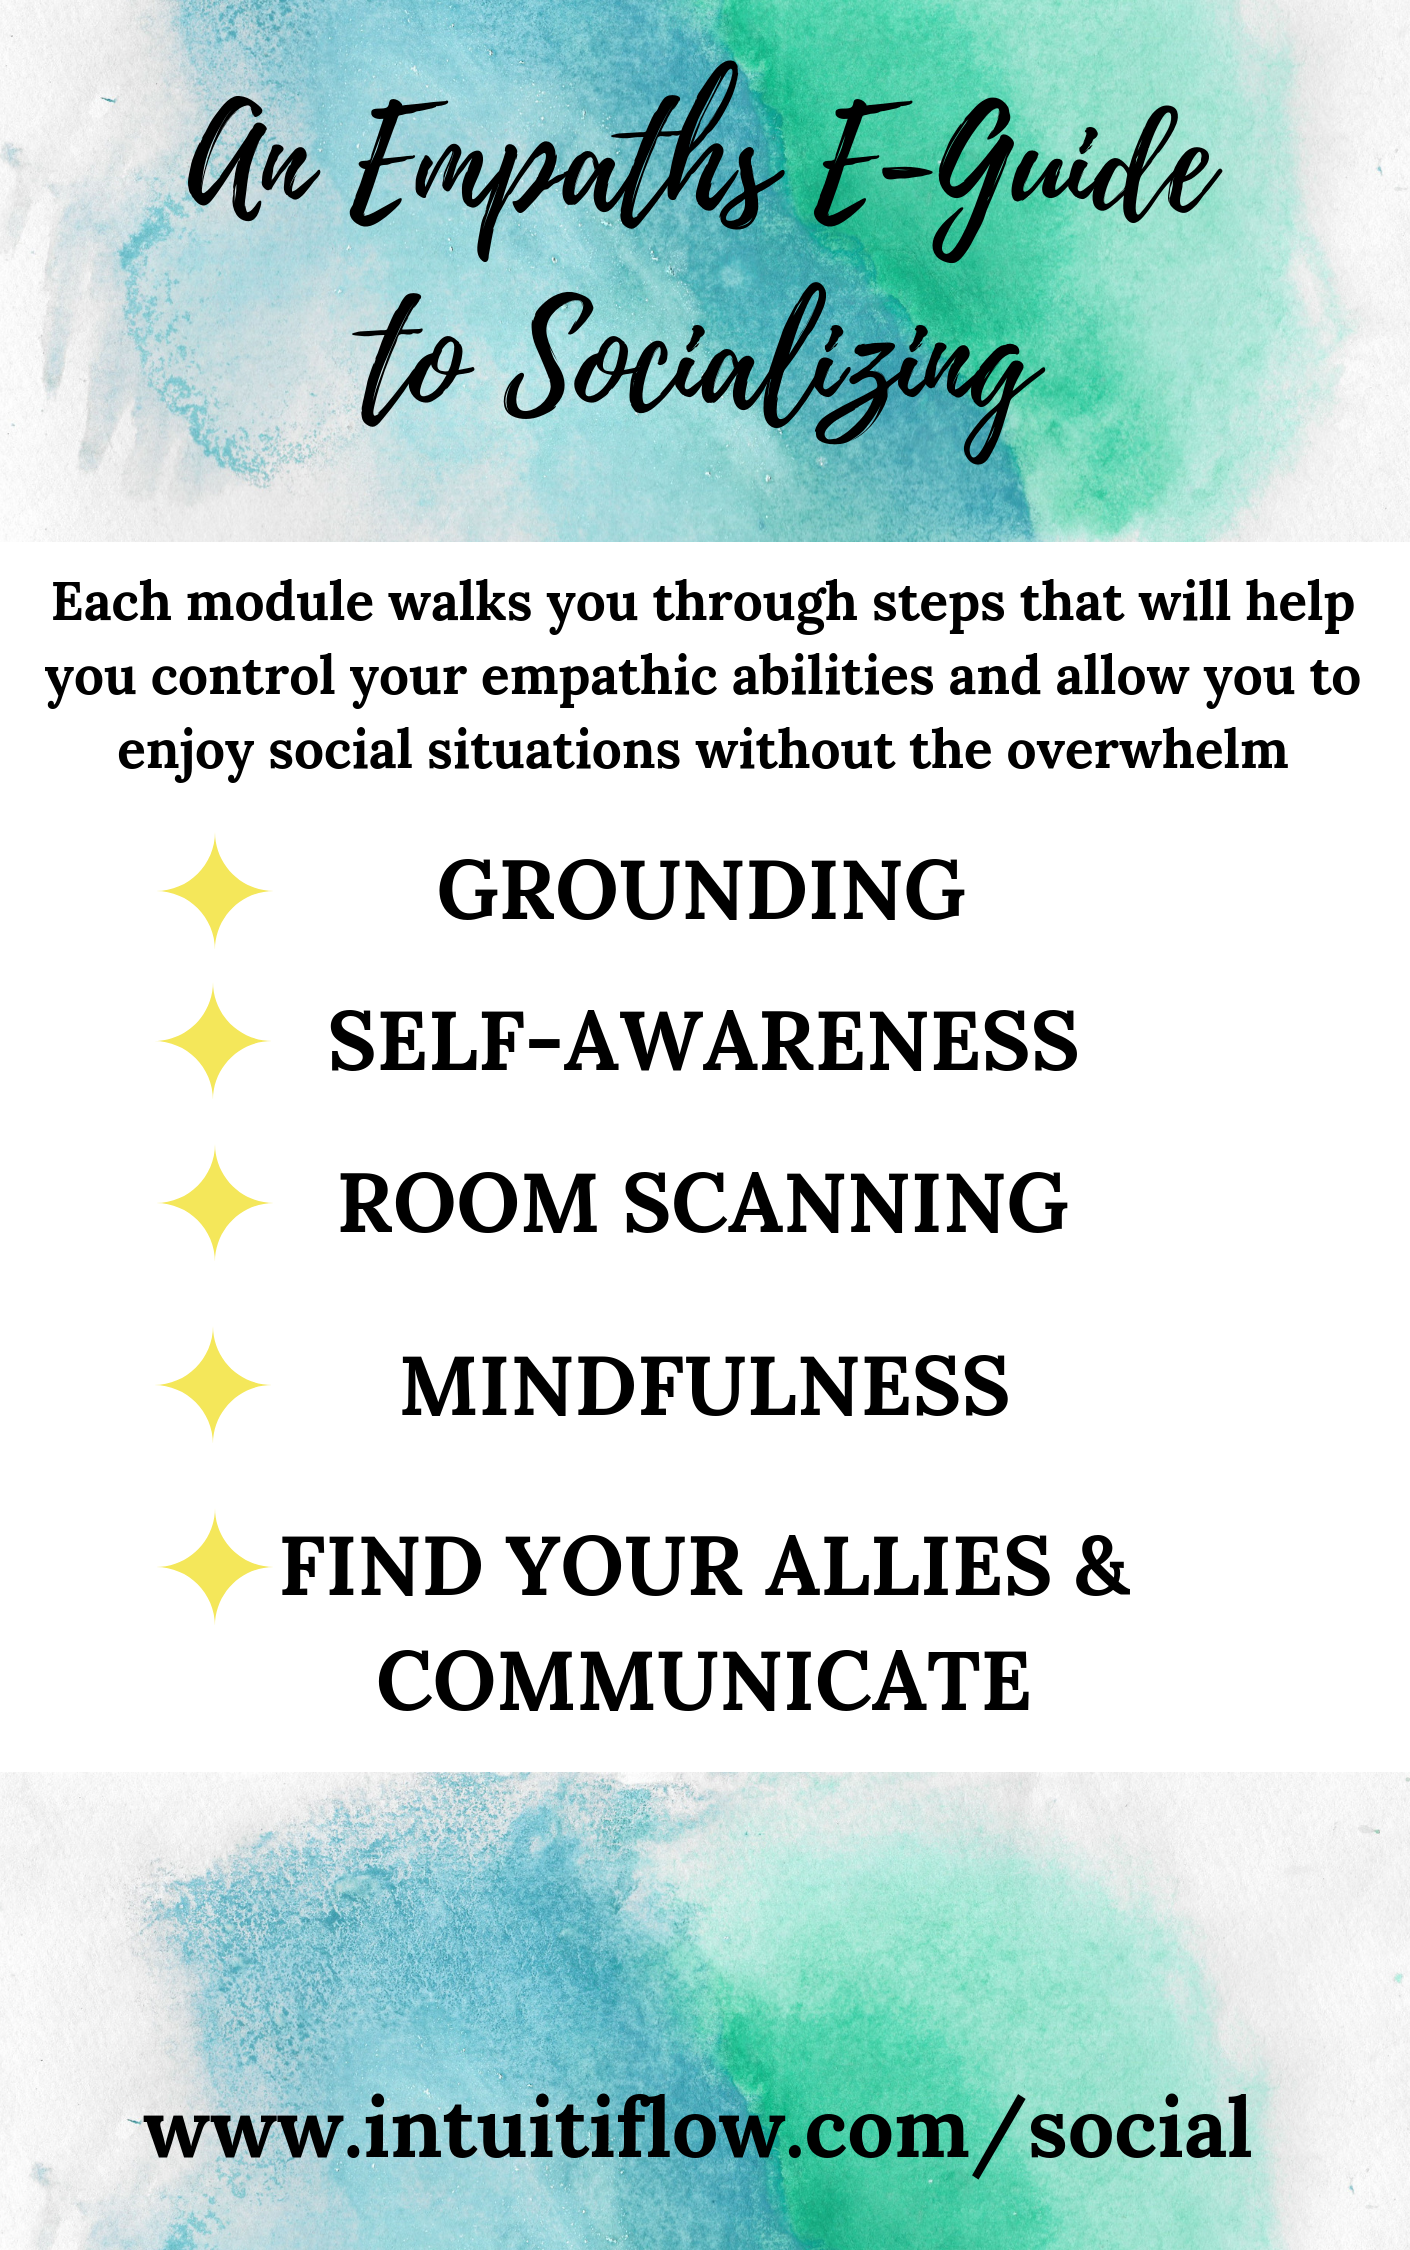 A Beautiful E Book To Walk You Through Steps That Will